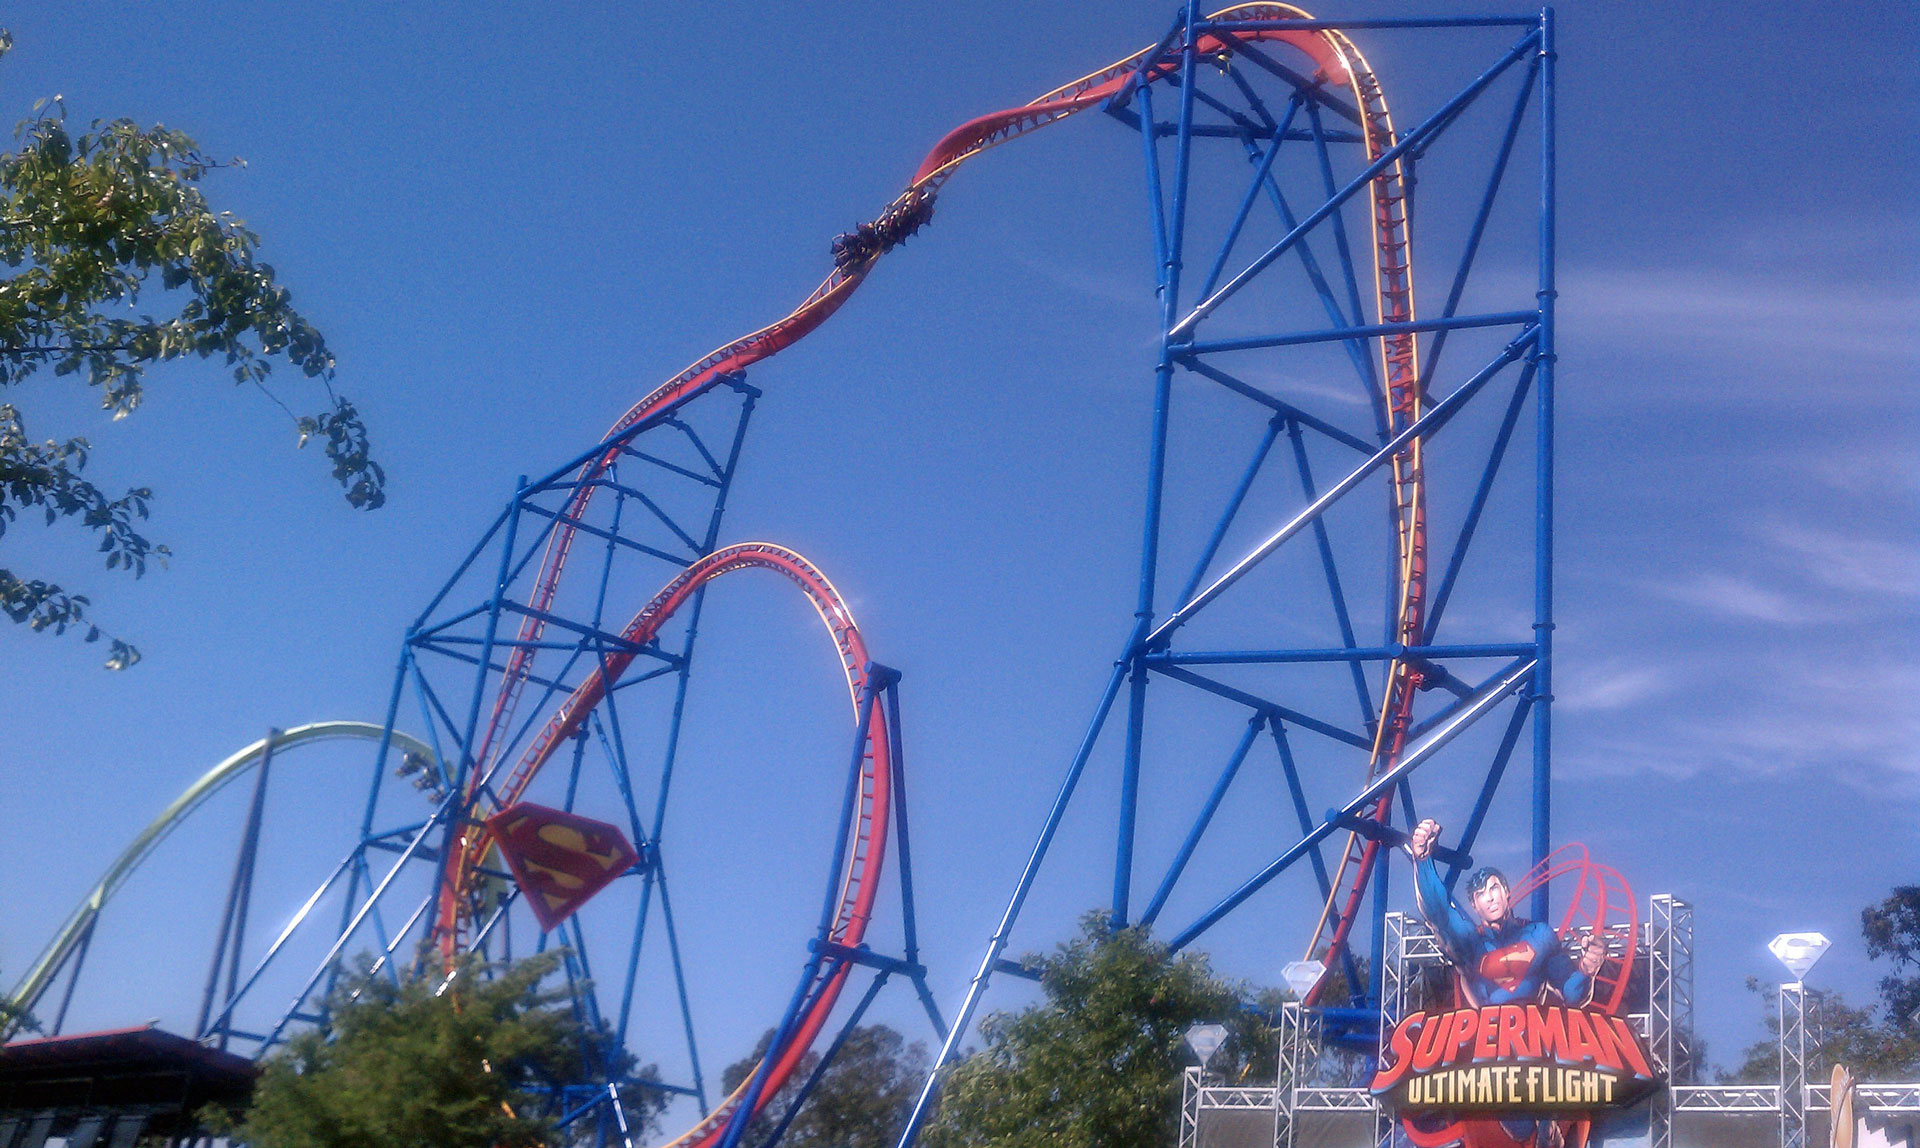 PREMIER RIDES COASTERS VIDEOS & FACTS - COASERFORCE